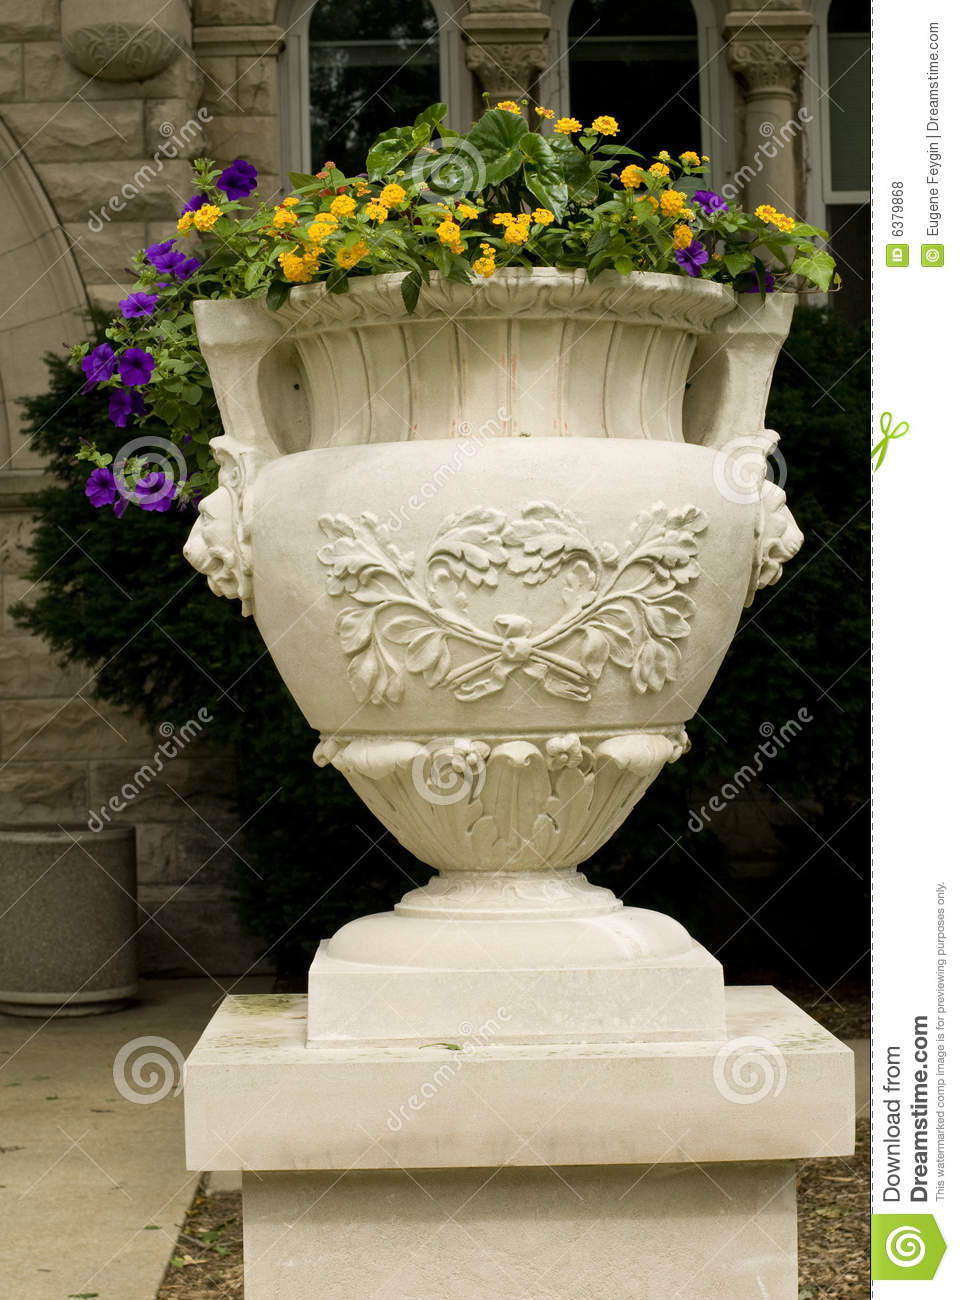 Flower pot royalty free stock photos image 6379868 for Fancy flower pots